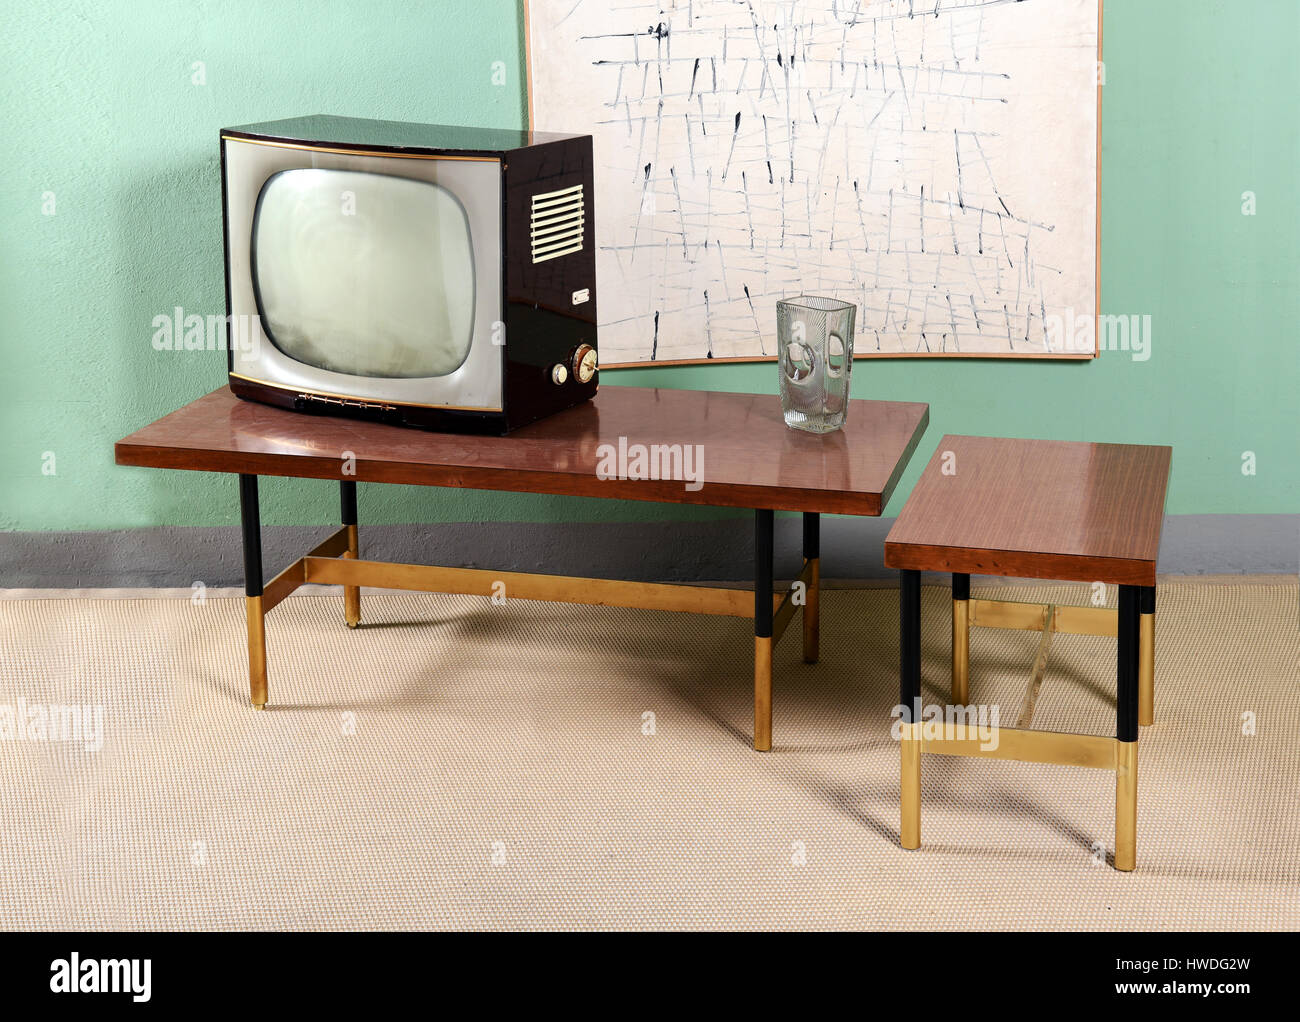 Retro Living Room With Furniture Still Life